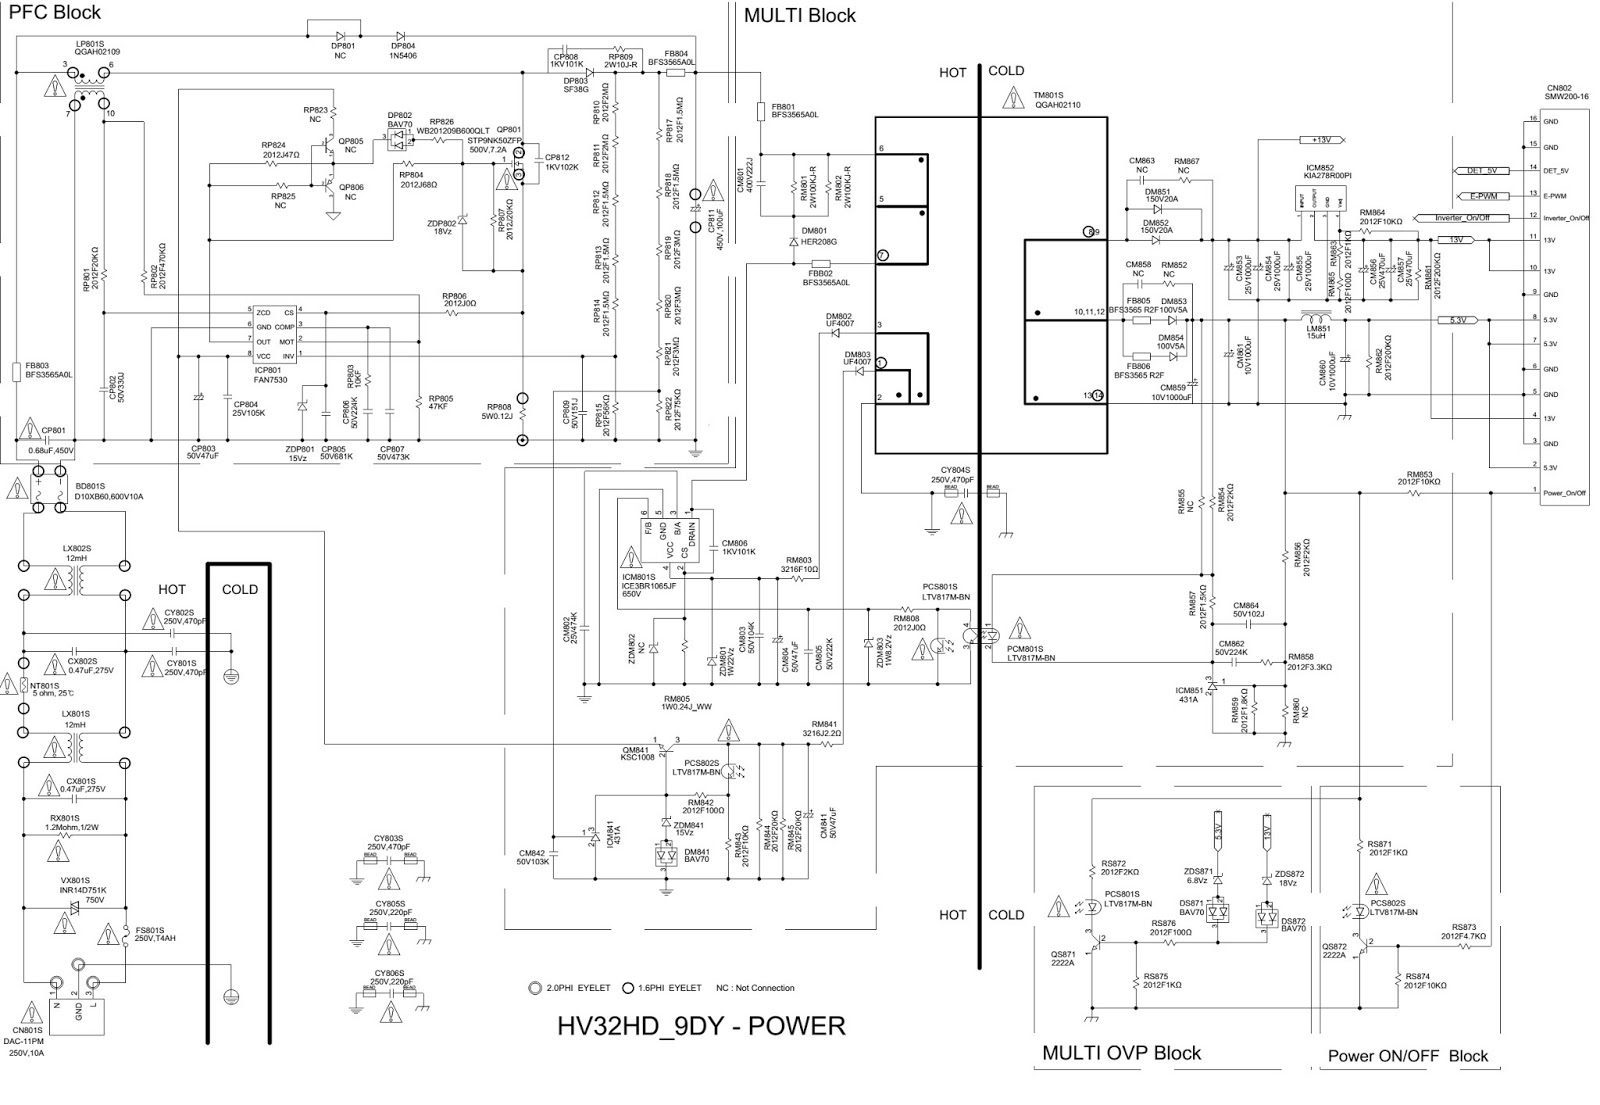 Wire Rtd Wiring Diagram on 4-20ma loop wiring diagram, 12 3 wire diagram, three wire diagram, temperature control wiring diagram, 12 wire generator wiring diagram, 4 wire resistance diagram, rtd circuit diagram, 7 wire plug wiring diagram, 3 wire sensor diagram, 2wire rtd diagram, 4 wire wiring diagram, rtd connection diagram,